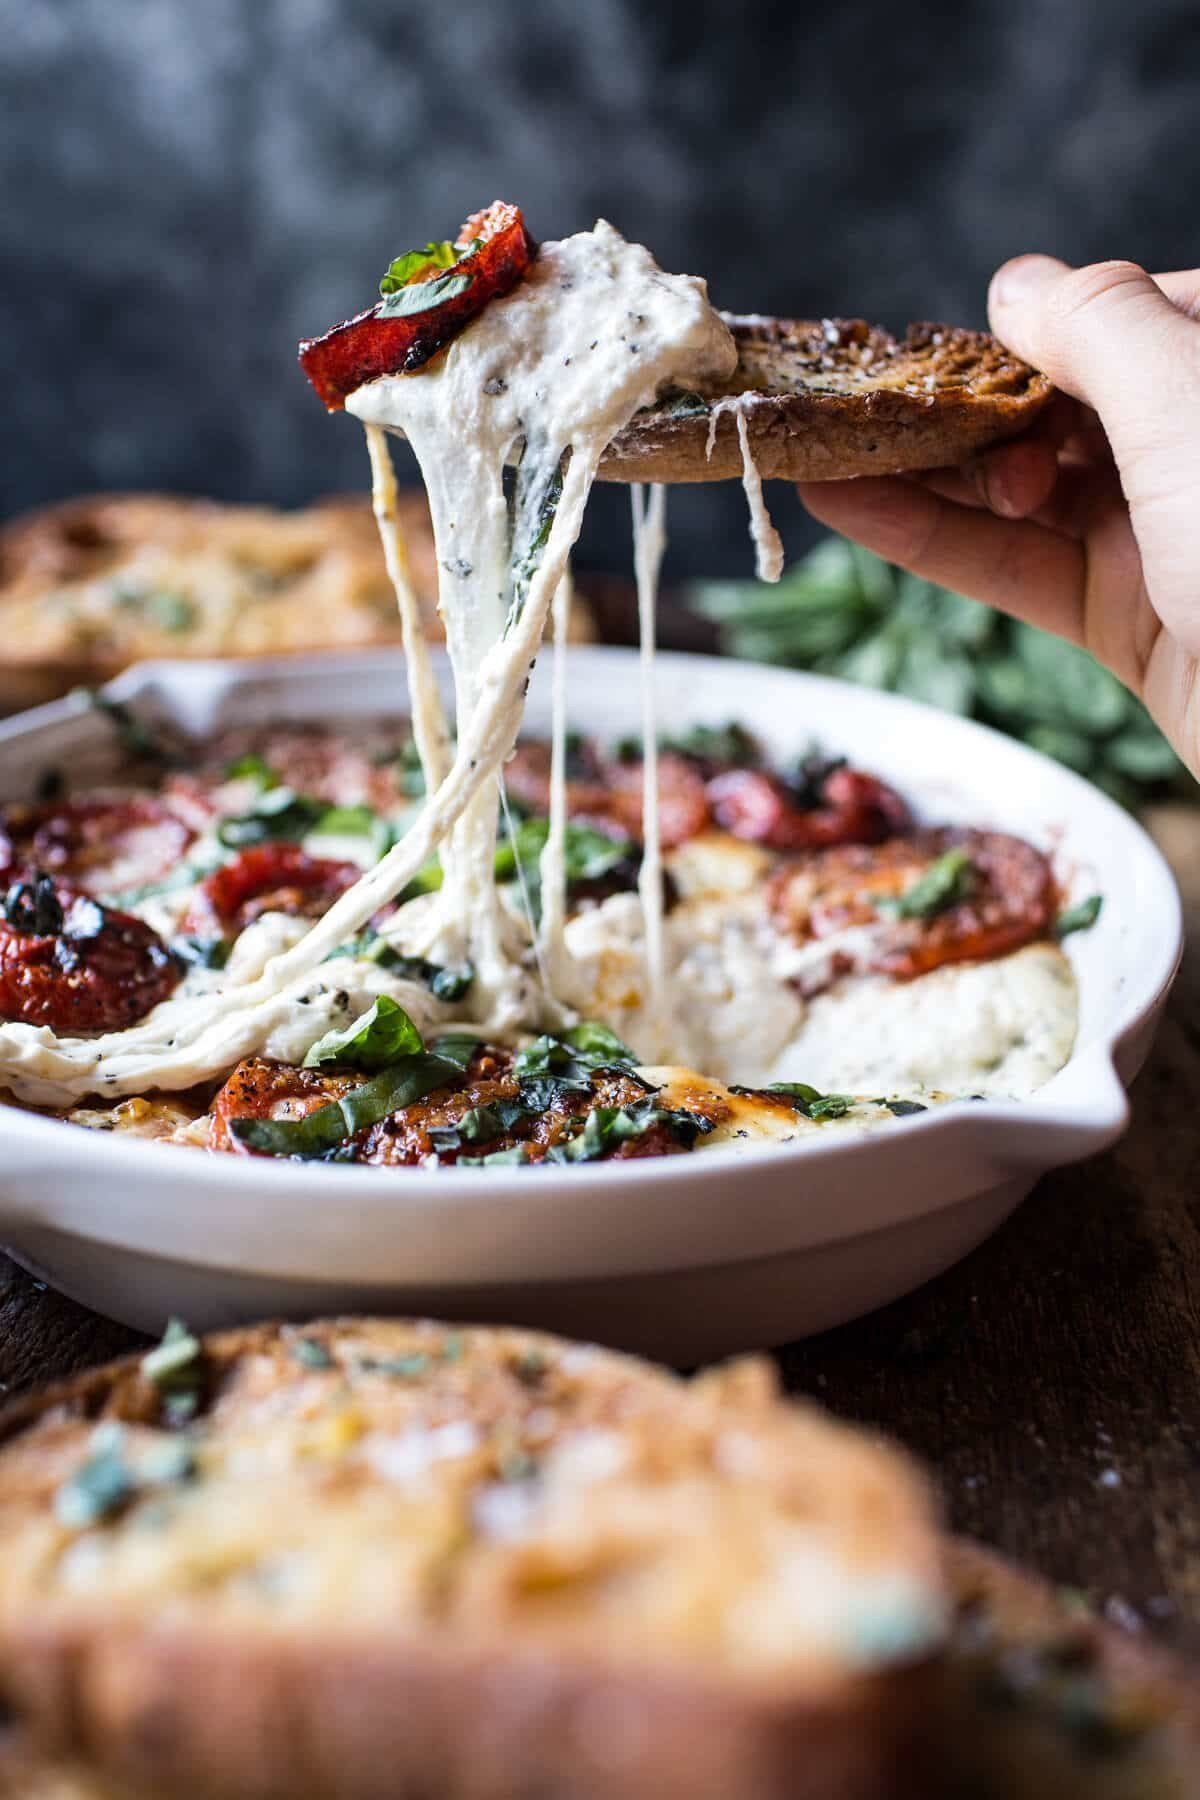 "<strong>Get the <a href=""https://www.halfbakedharvest.com/margherita-pizza-dip-burrata/"" target=""_blank"">Margherita Pizza Dip"